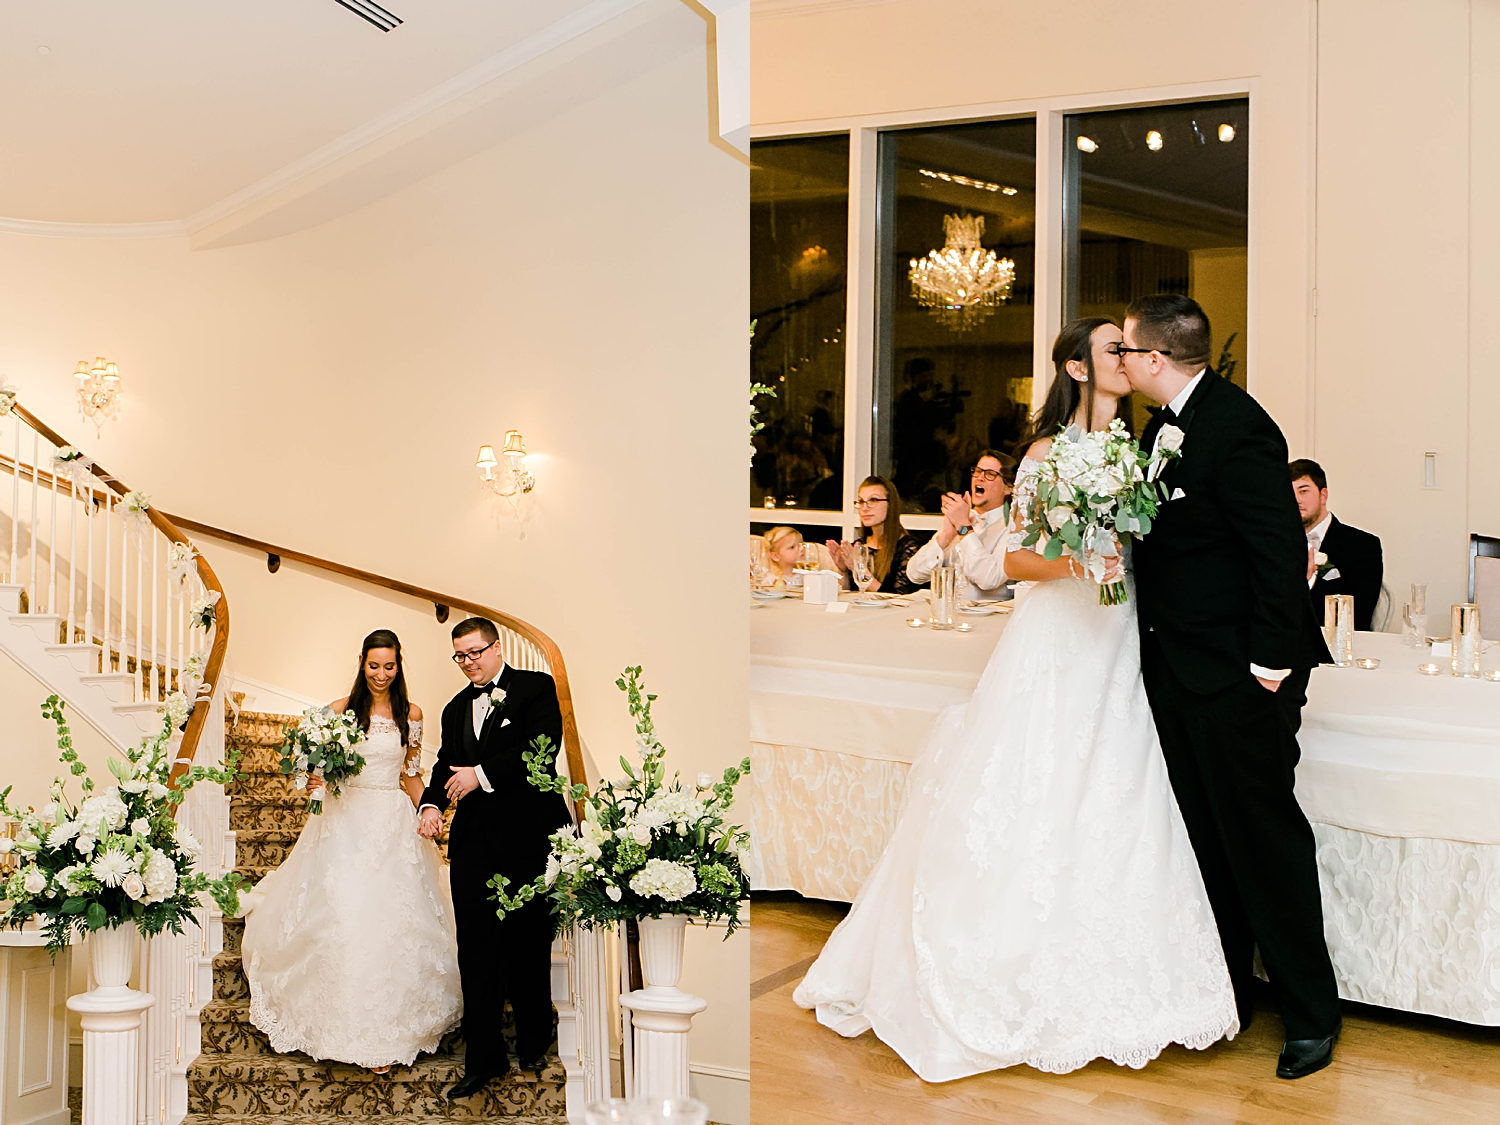 atlanta-georgia-wedding-photographer-jb-marie-photography